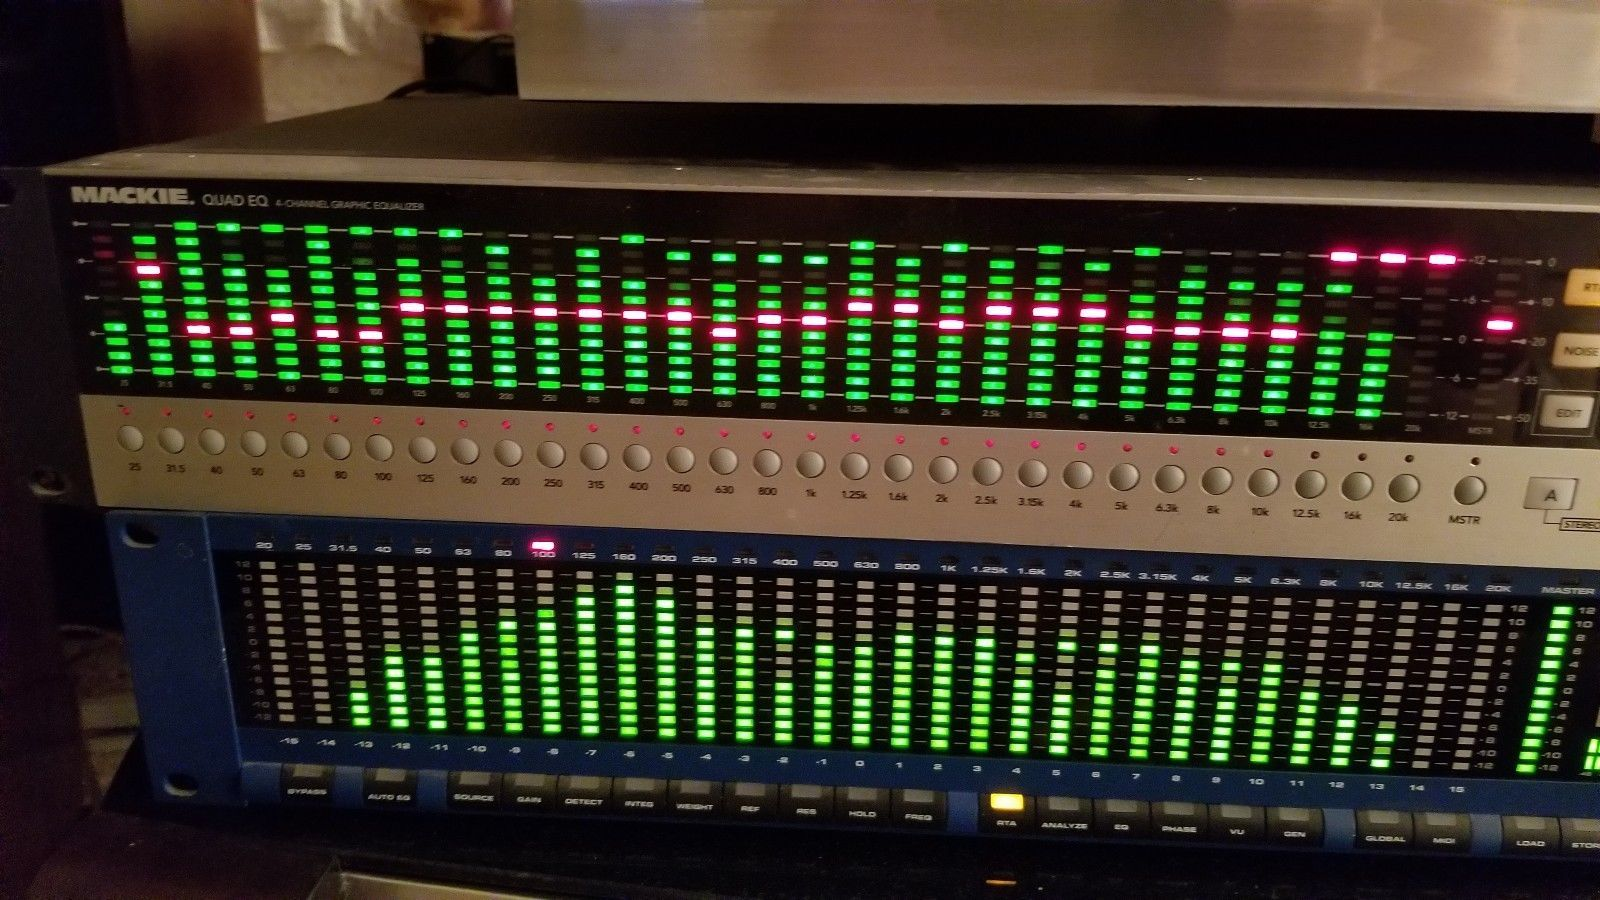 Mackie Quad EQ 4 channel graphic equalizer and real time